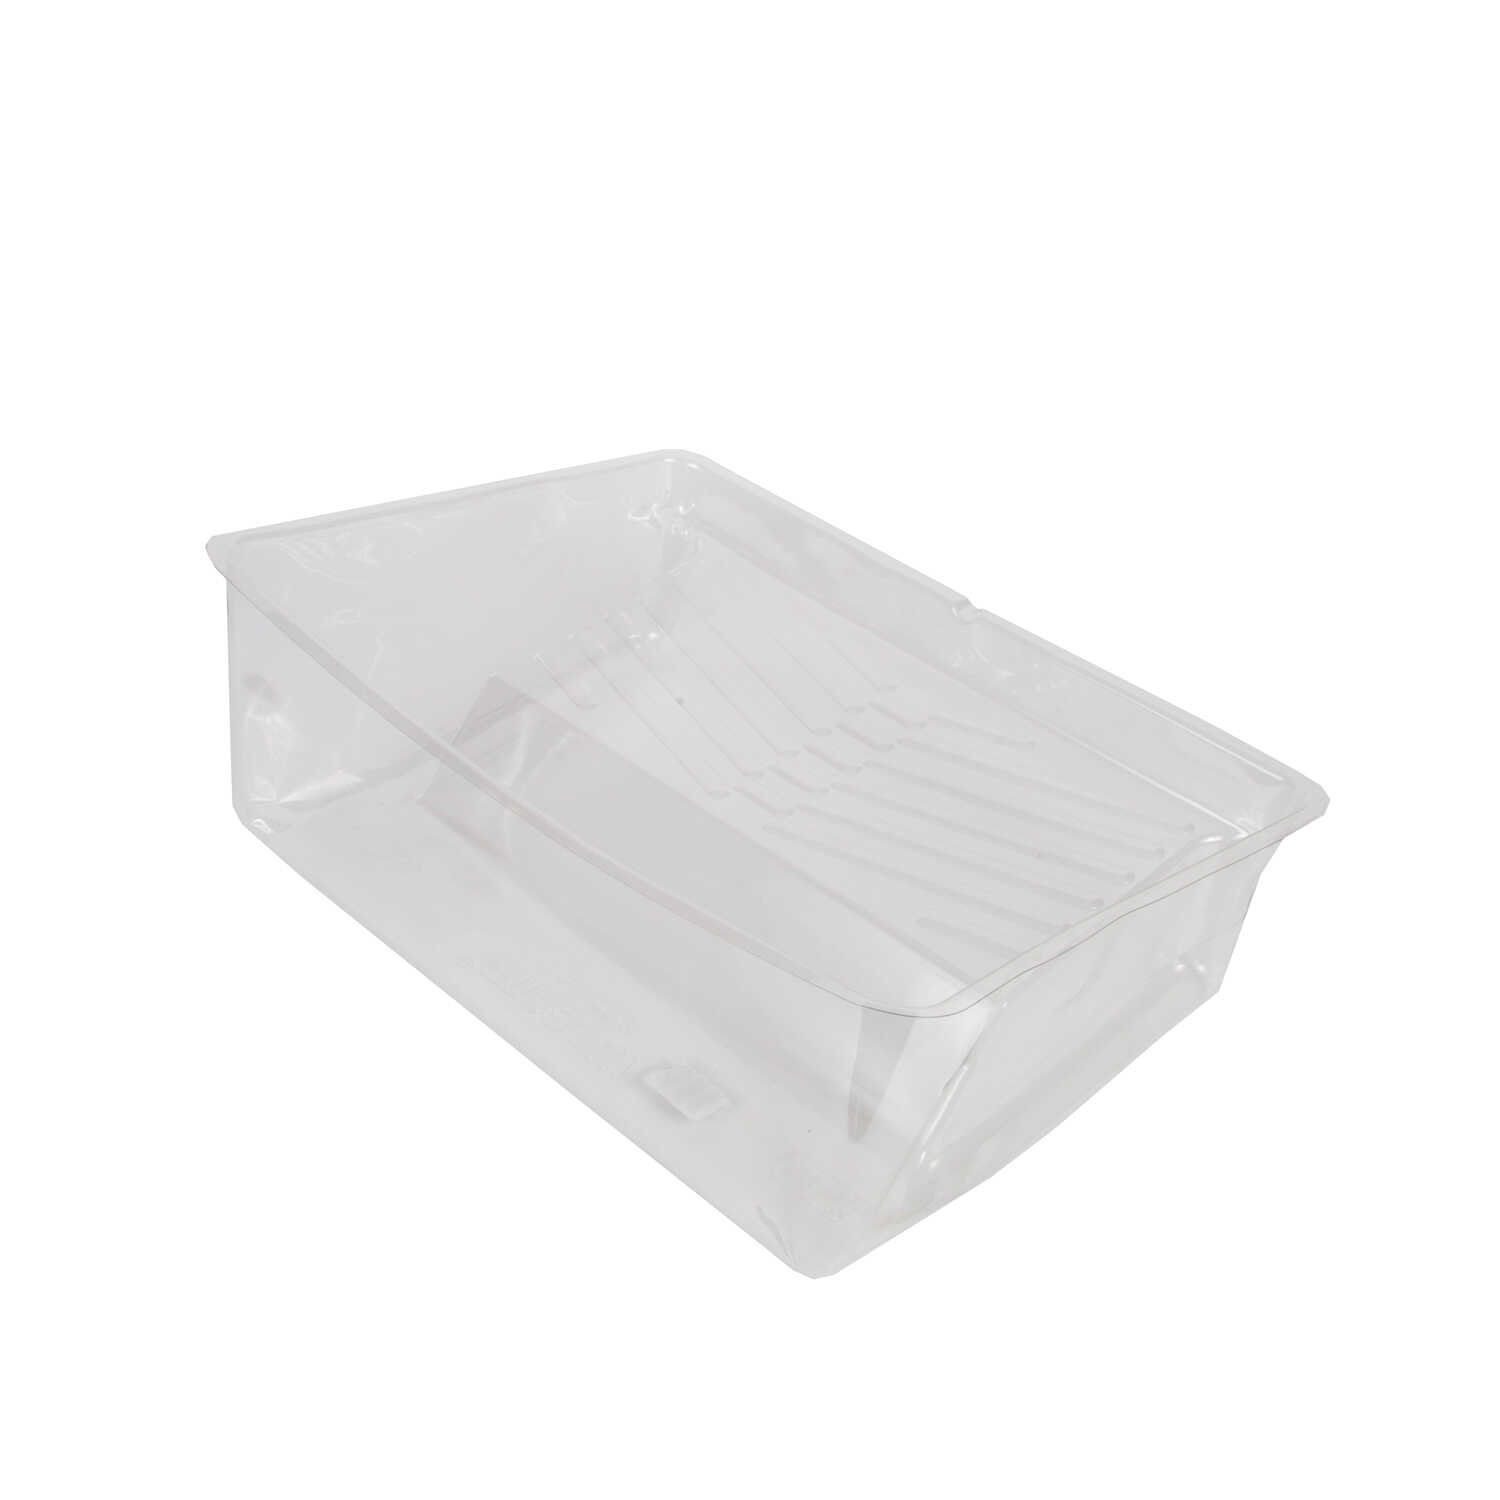 Wooster  Sherlock Bucket-Tray  Plastic  Paint Tray Liner  1 gal.